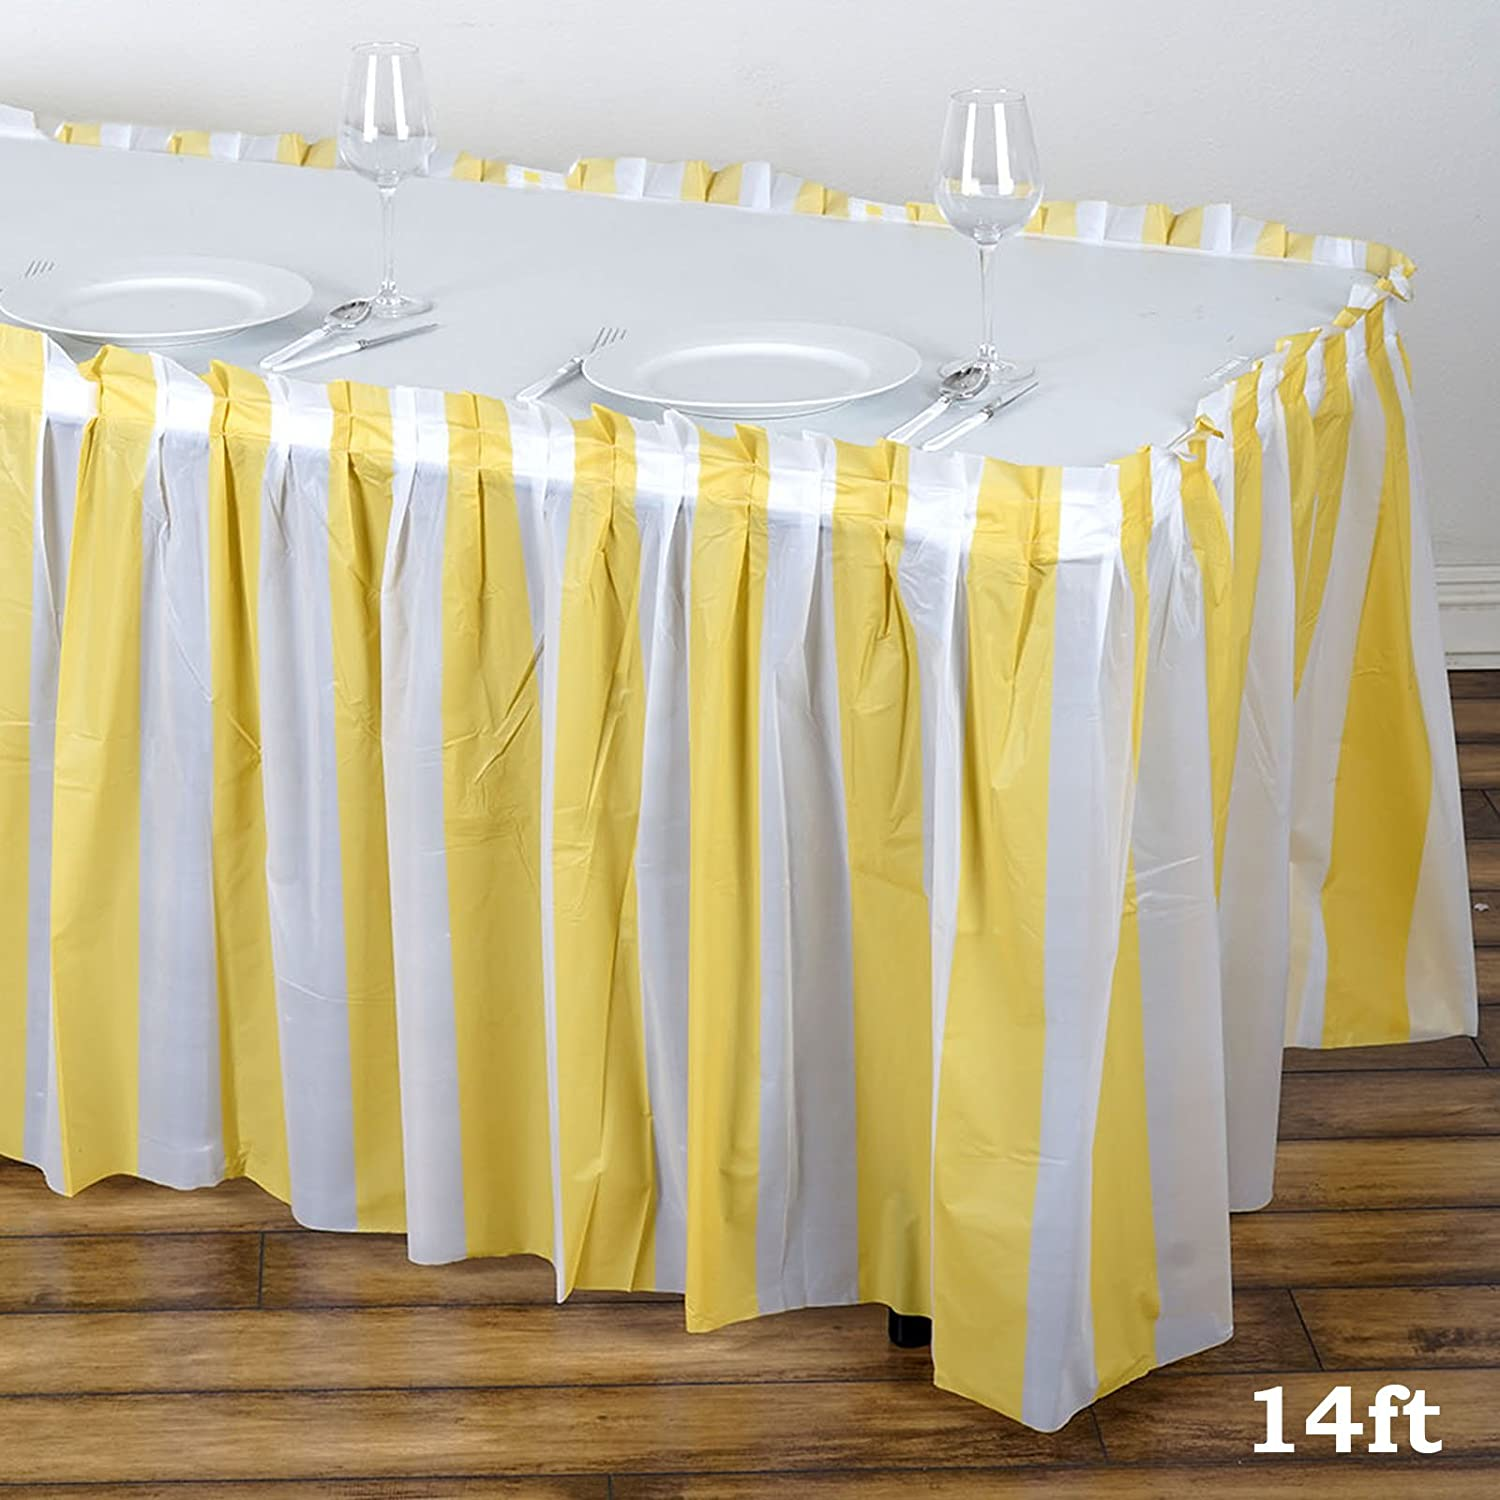 14/' BLACK POLYESTER PLEATED TABLE SKIRT skirting  Wedding Catering booths